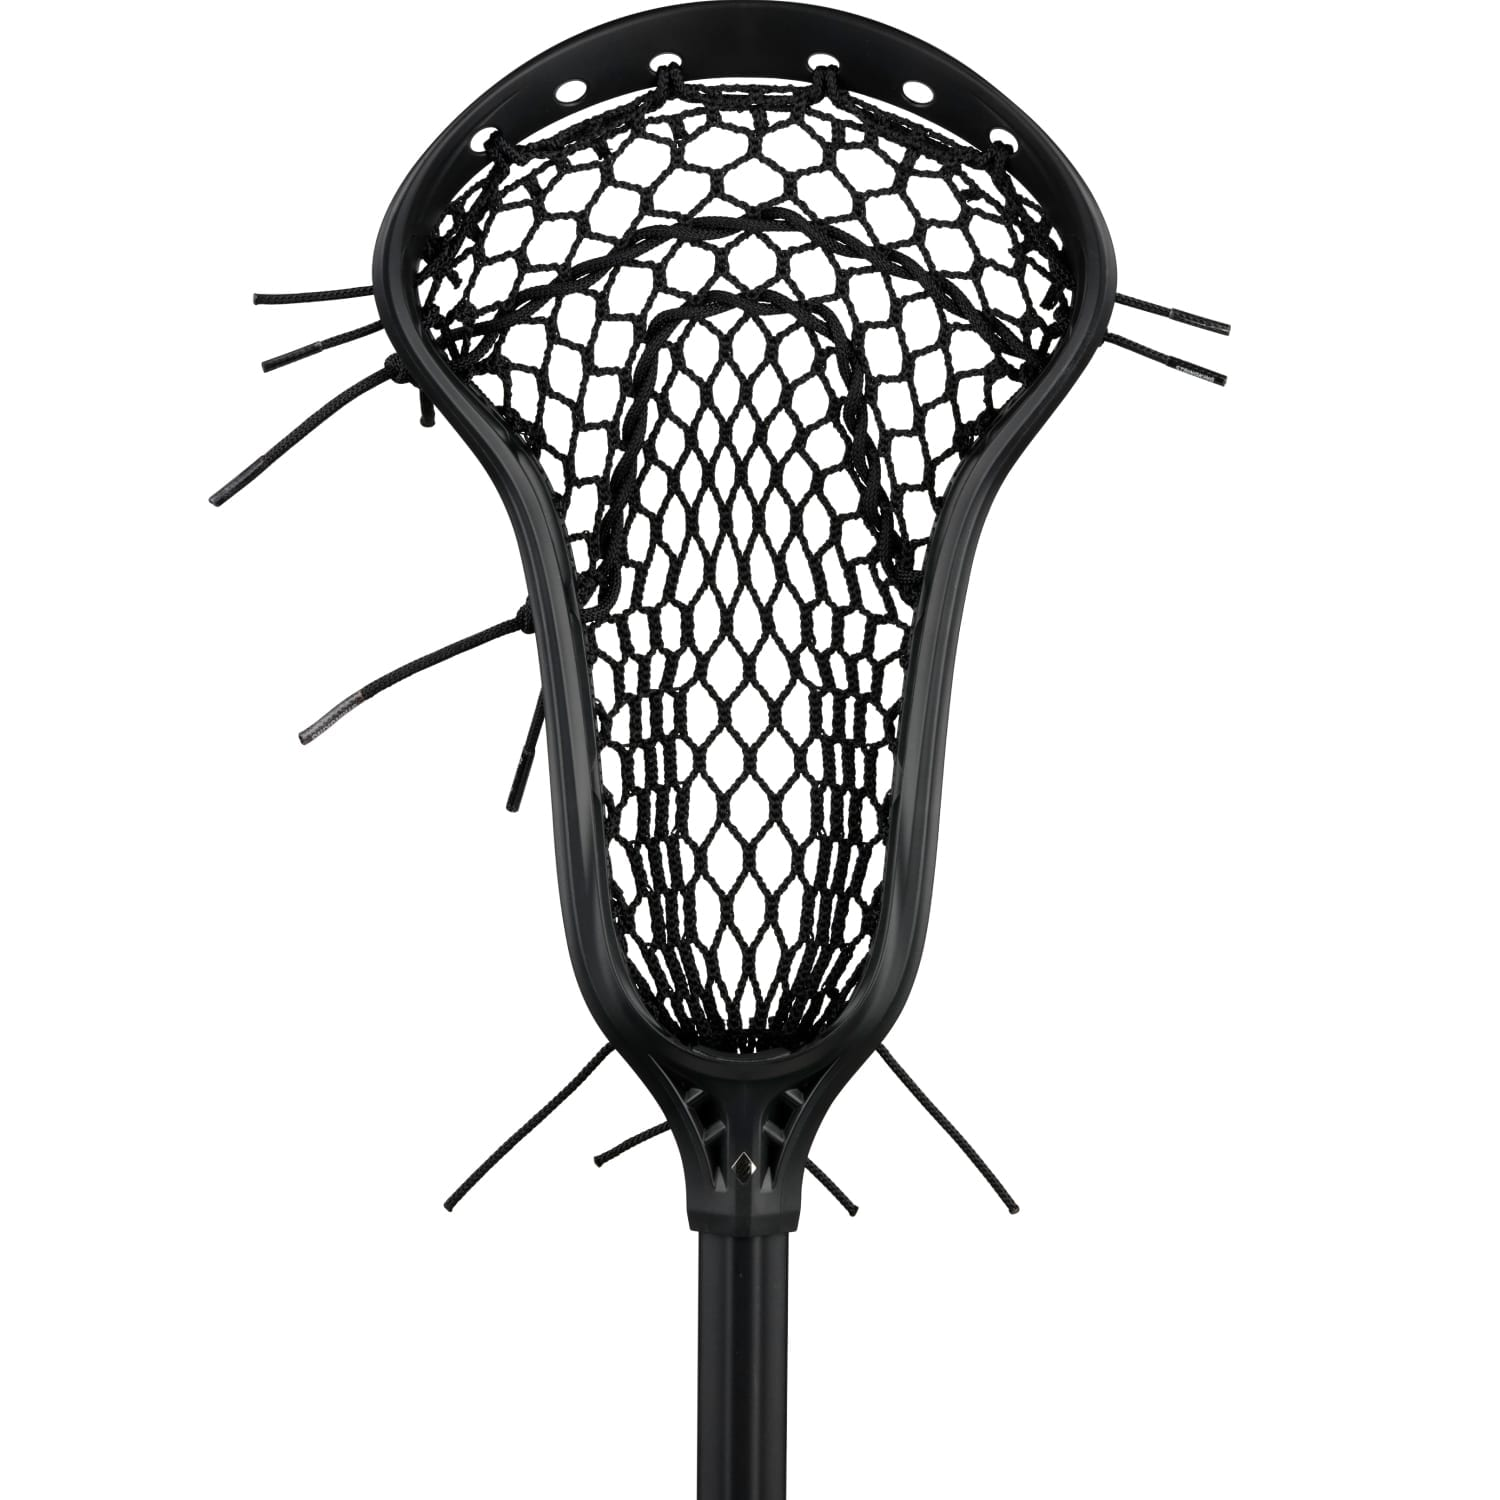 StringKing-Womens-Complete2Pro-Midfield-Face-Strung-Black1500.jpg